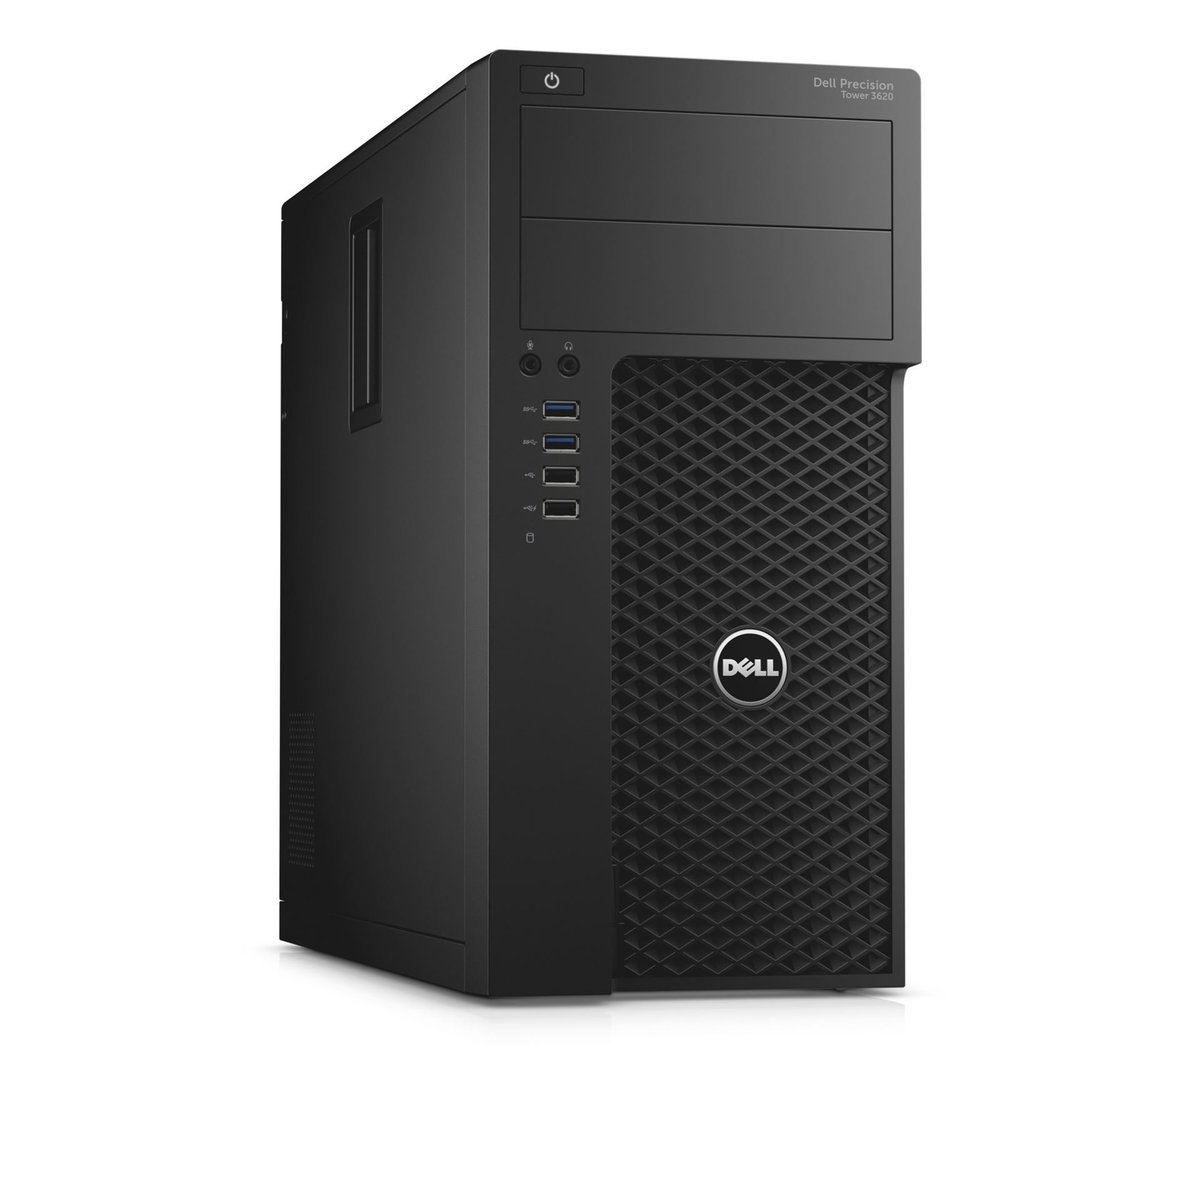 Dell Precision Tower 3620 CUP3620AM03AU Desktop likewise Lenovo T420 besides Dealmaster Get An Dell Inspiron 3000 With A Core I7 Cpu For 629 99 further Pdf xchange viewer besides Lenovo Ideapad B460 233 Intel Dual Core. on desktop hard drive reader